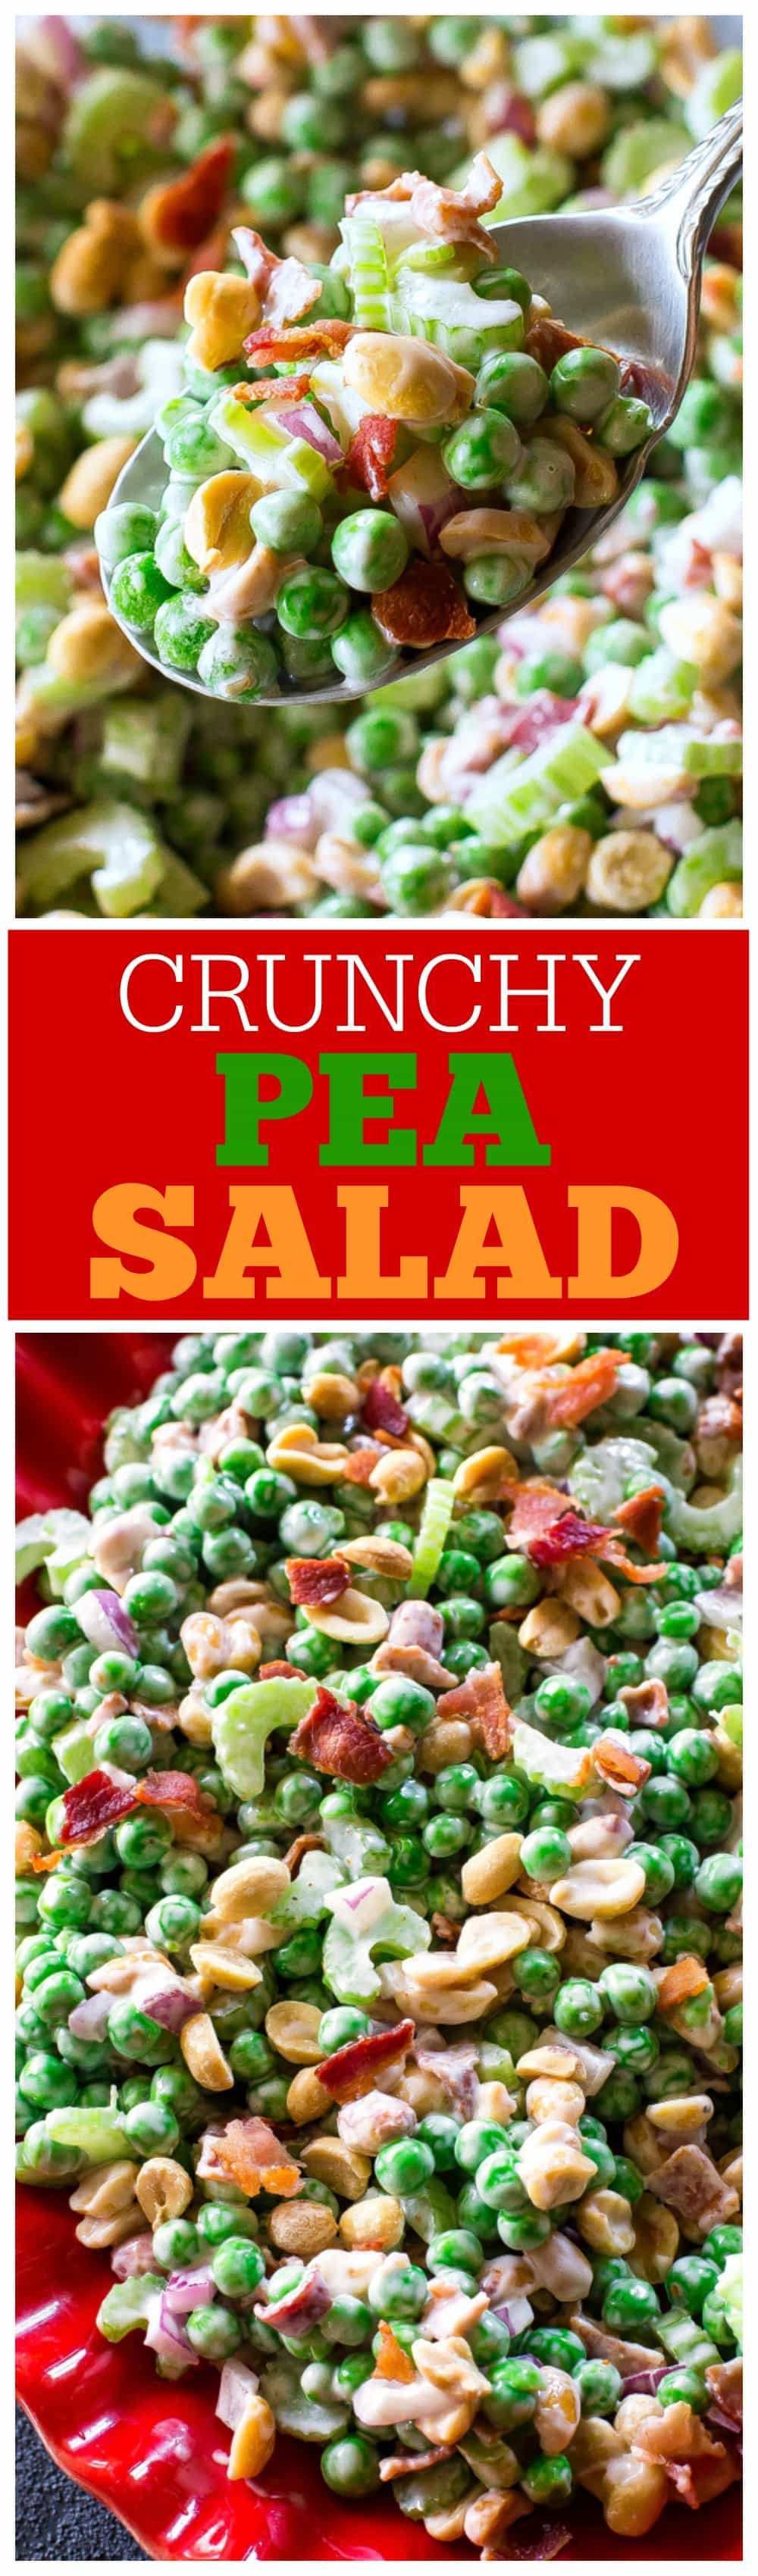 This Crunchy Pea Salad may sound weird but trust me, it's so good! Peas, peanuts, bacon, celery...all for a refreshing salad. This recipe is a potluck favorite! #crunchy #pea #salad #side #easter #potluck #bbq